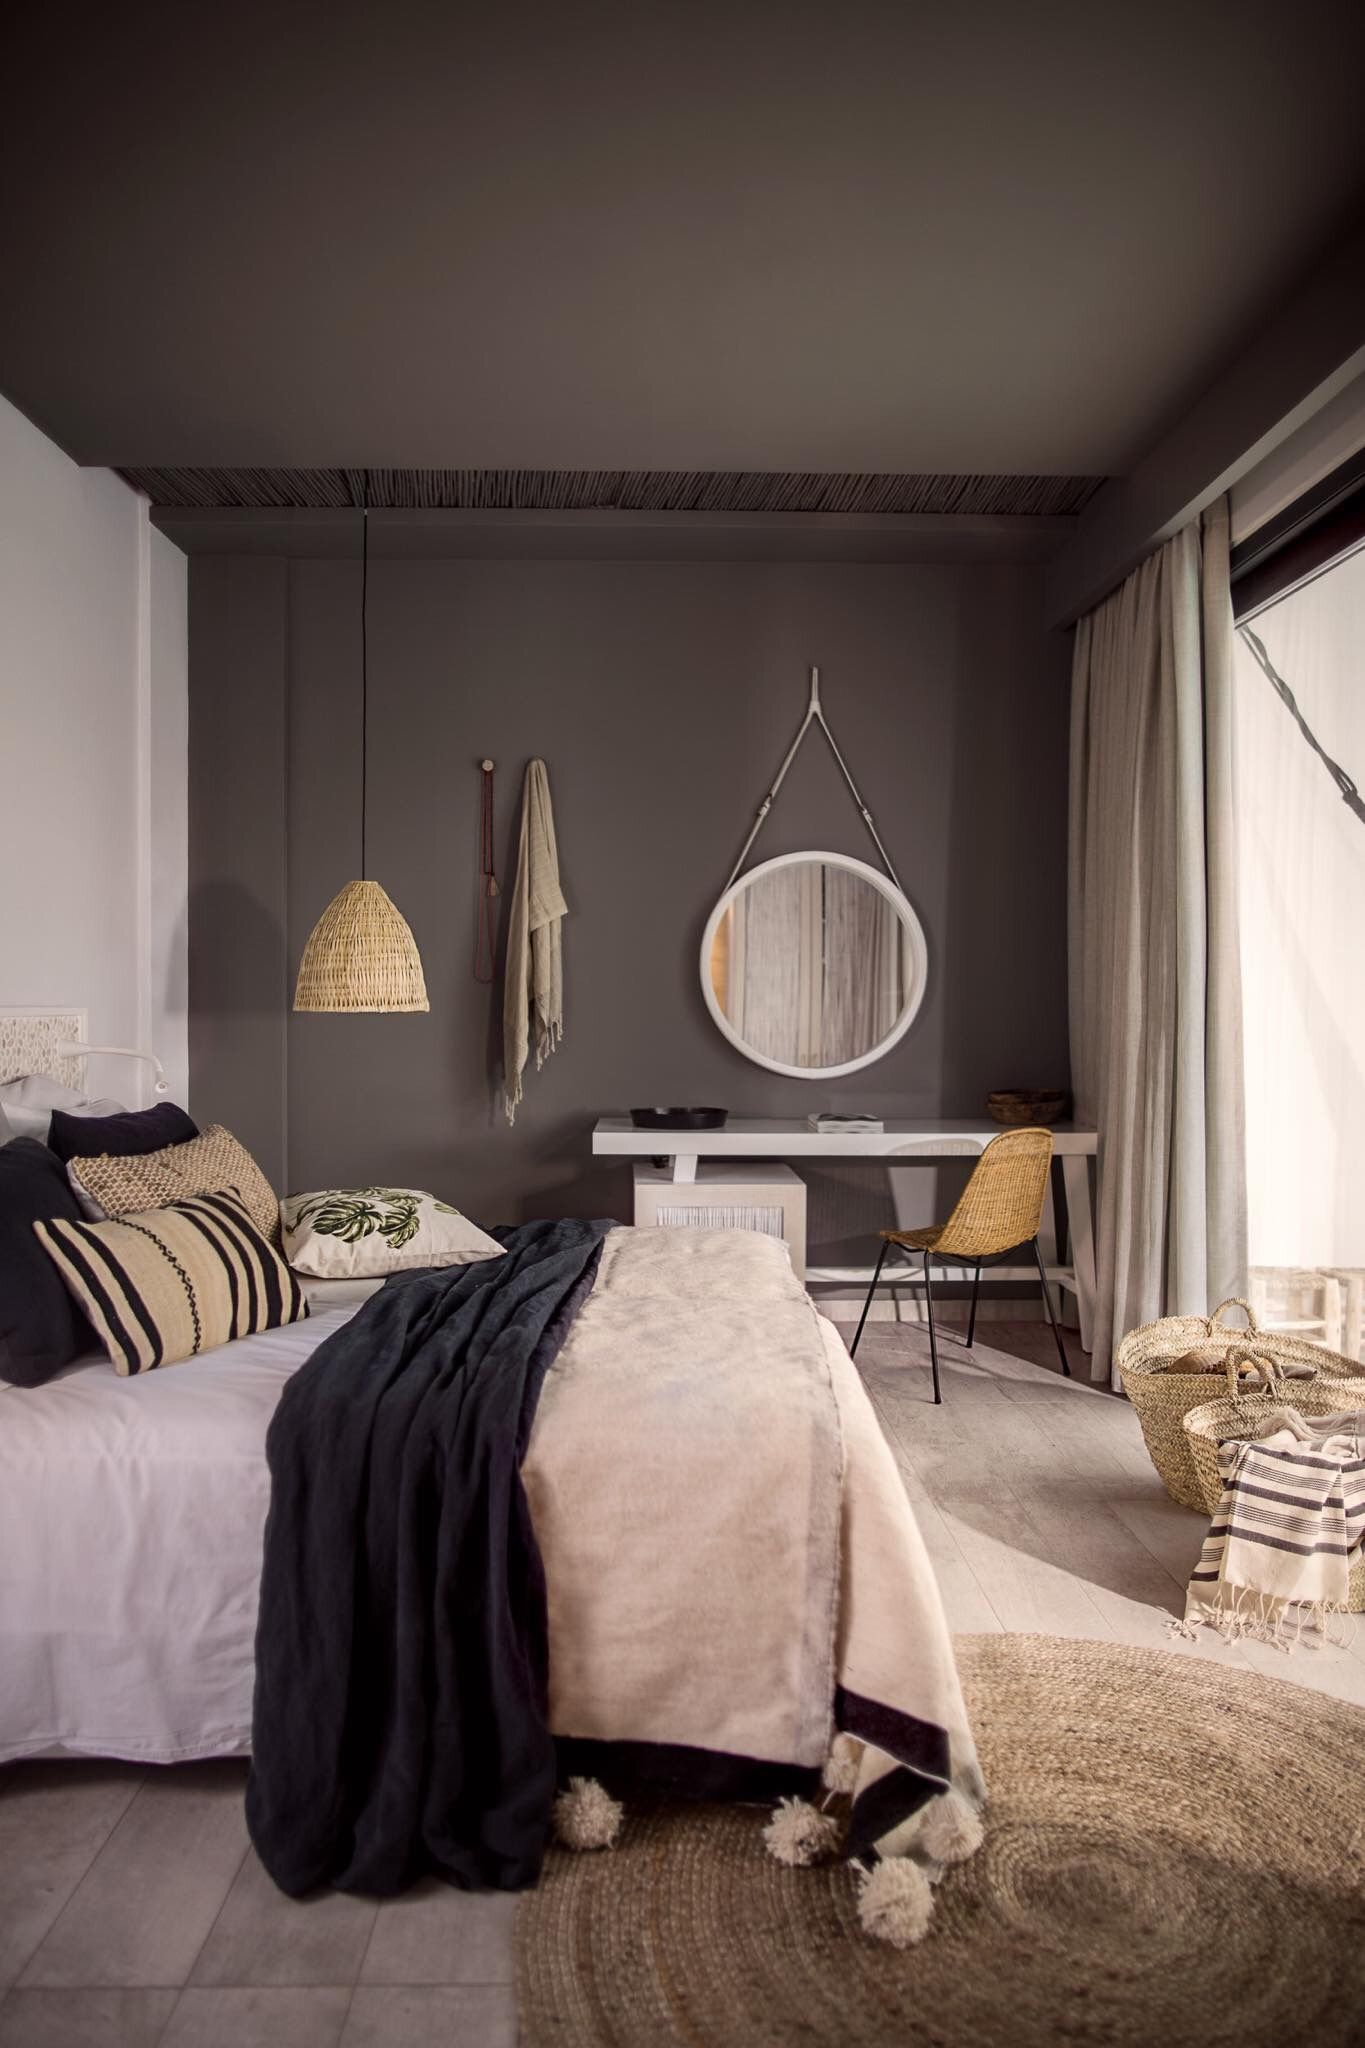 This is a great way to make grey feel really warm in a bedroom space Love the jute rug and moroccan pom pom blanket